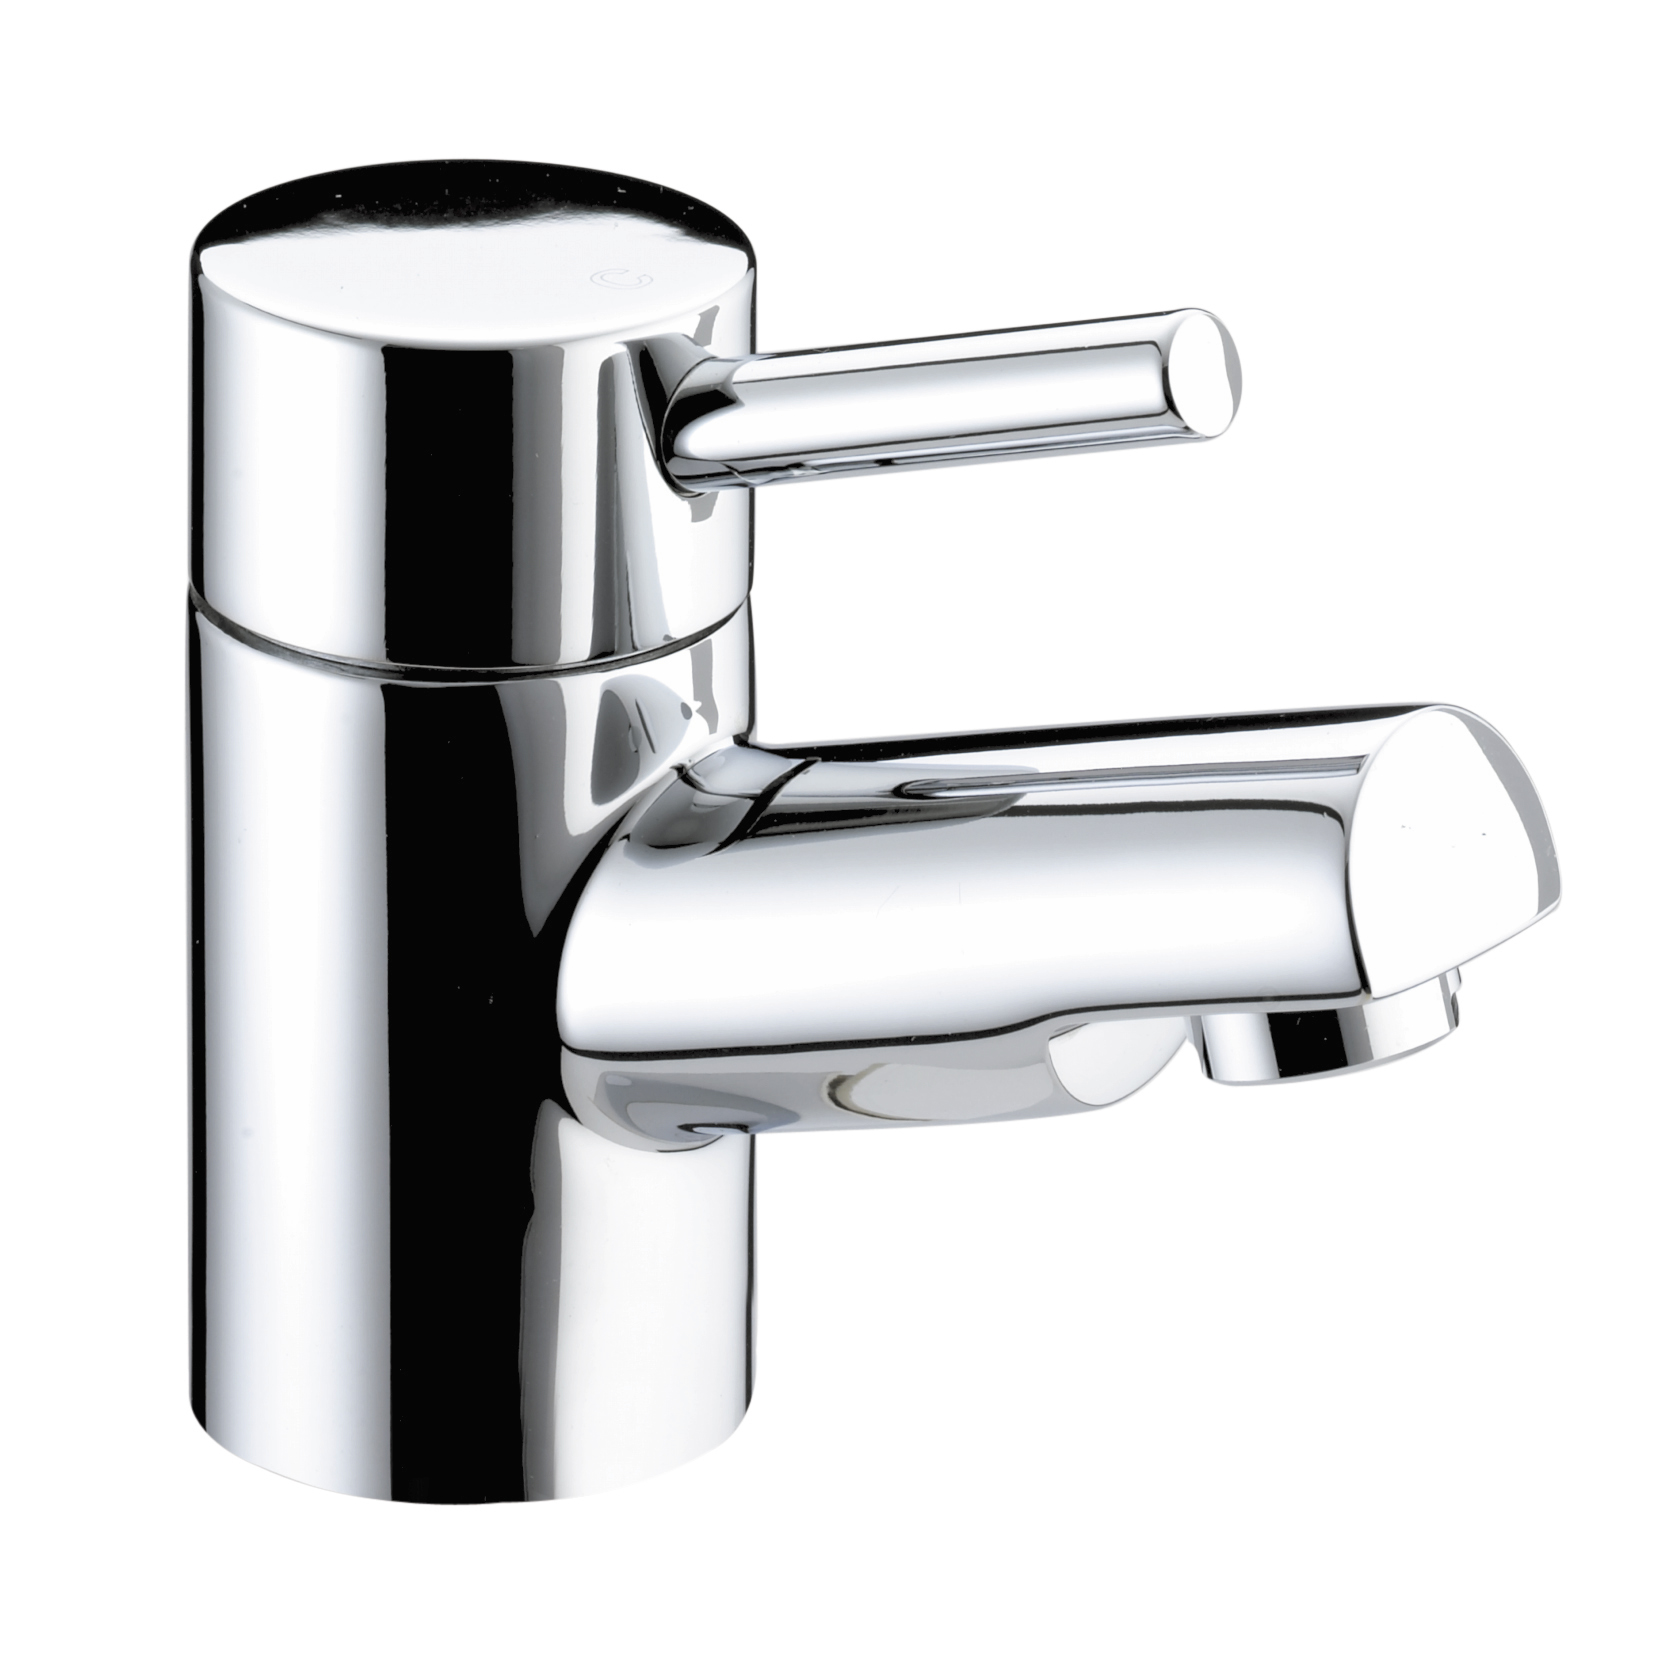 BRISTAN PRISM 1 HOLE BATH FILLER